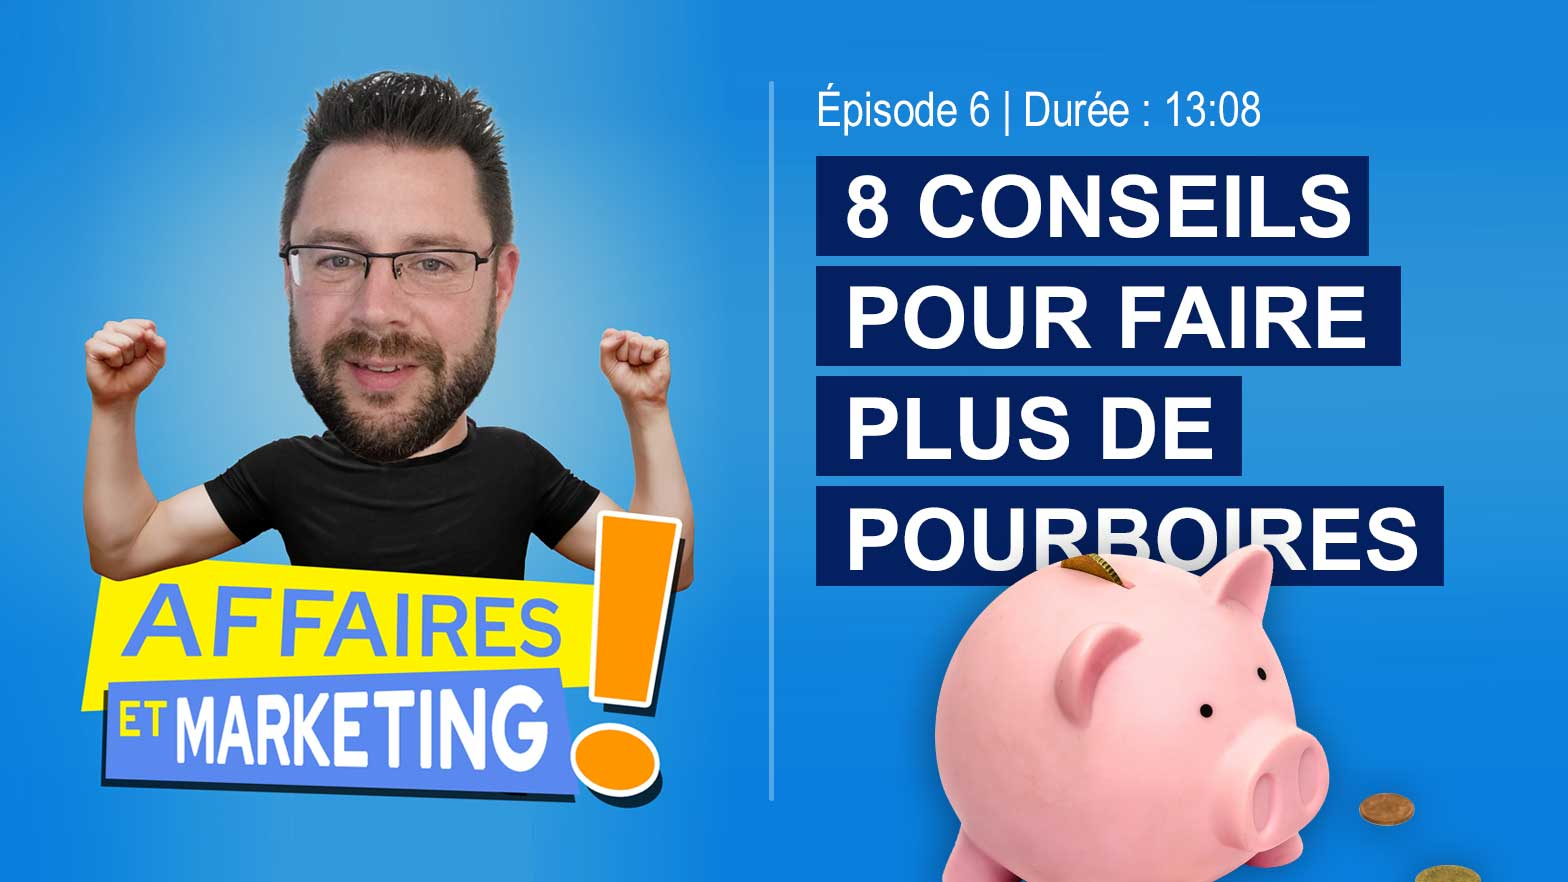 Podcast : comment faire plus de pourboires